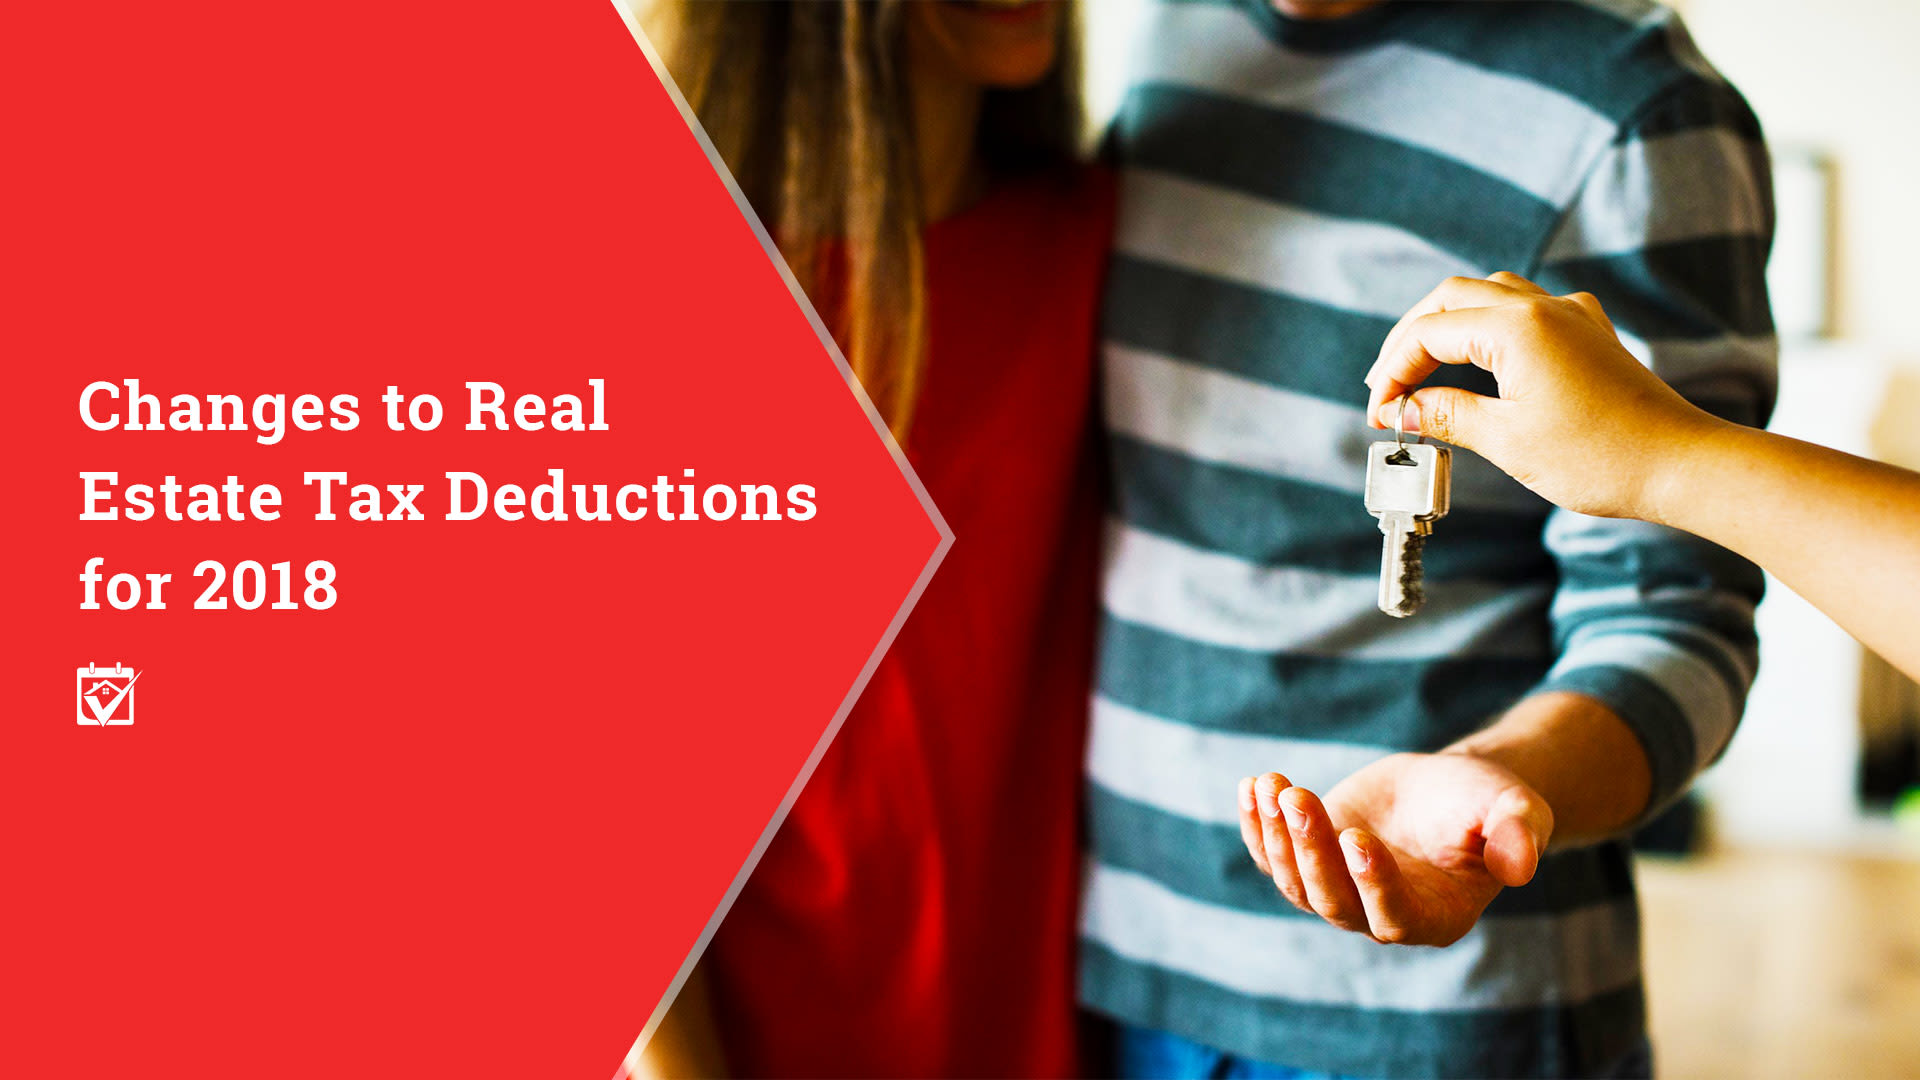 Changes to U.S. Real Estate Tax Deductions for 2018